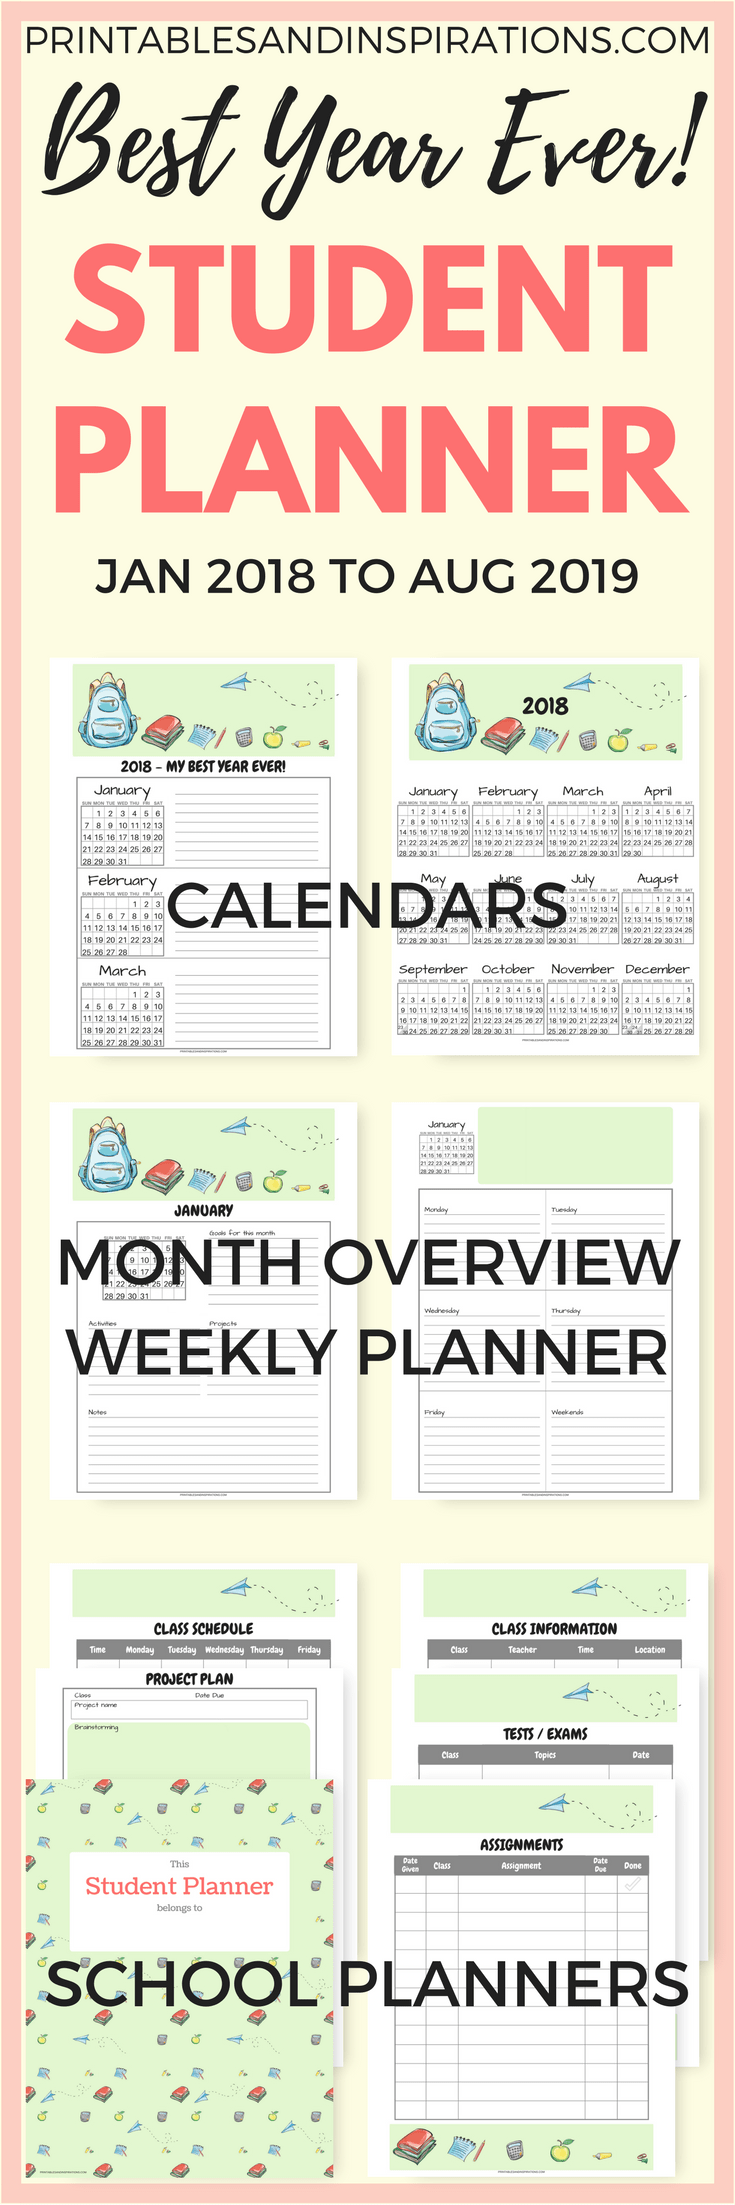 Free Student Planner Printable Binder For 2019 2020 Updated